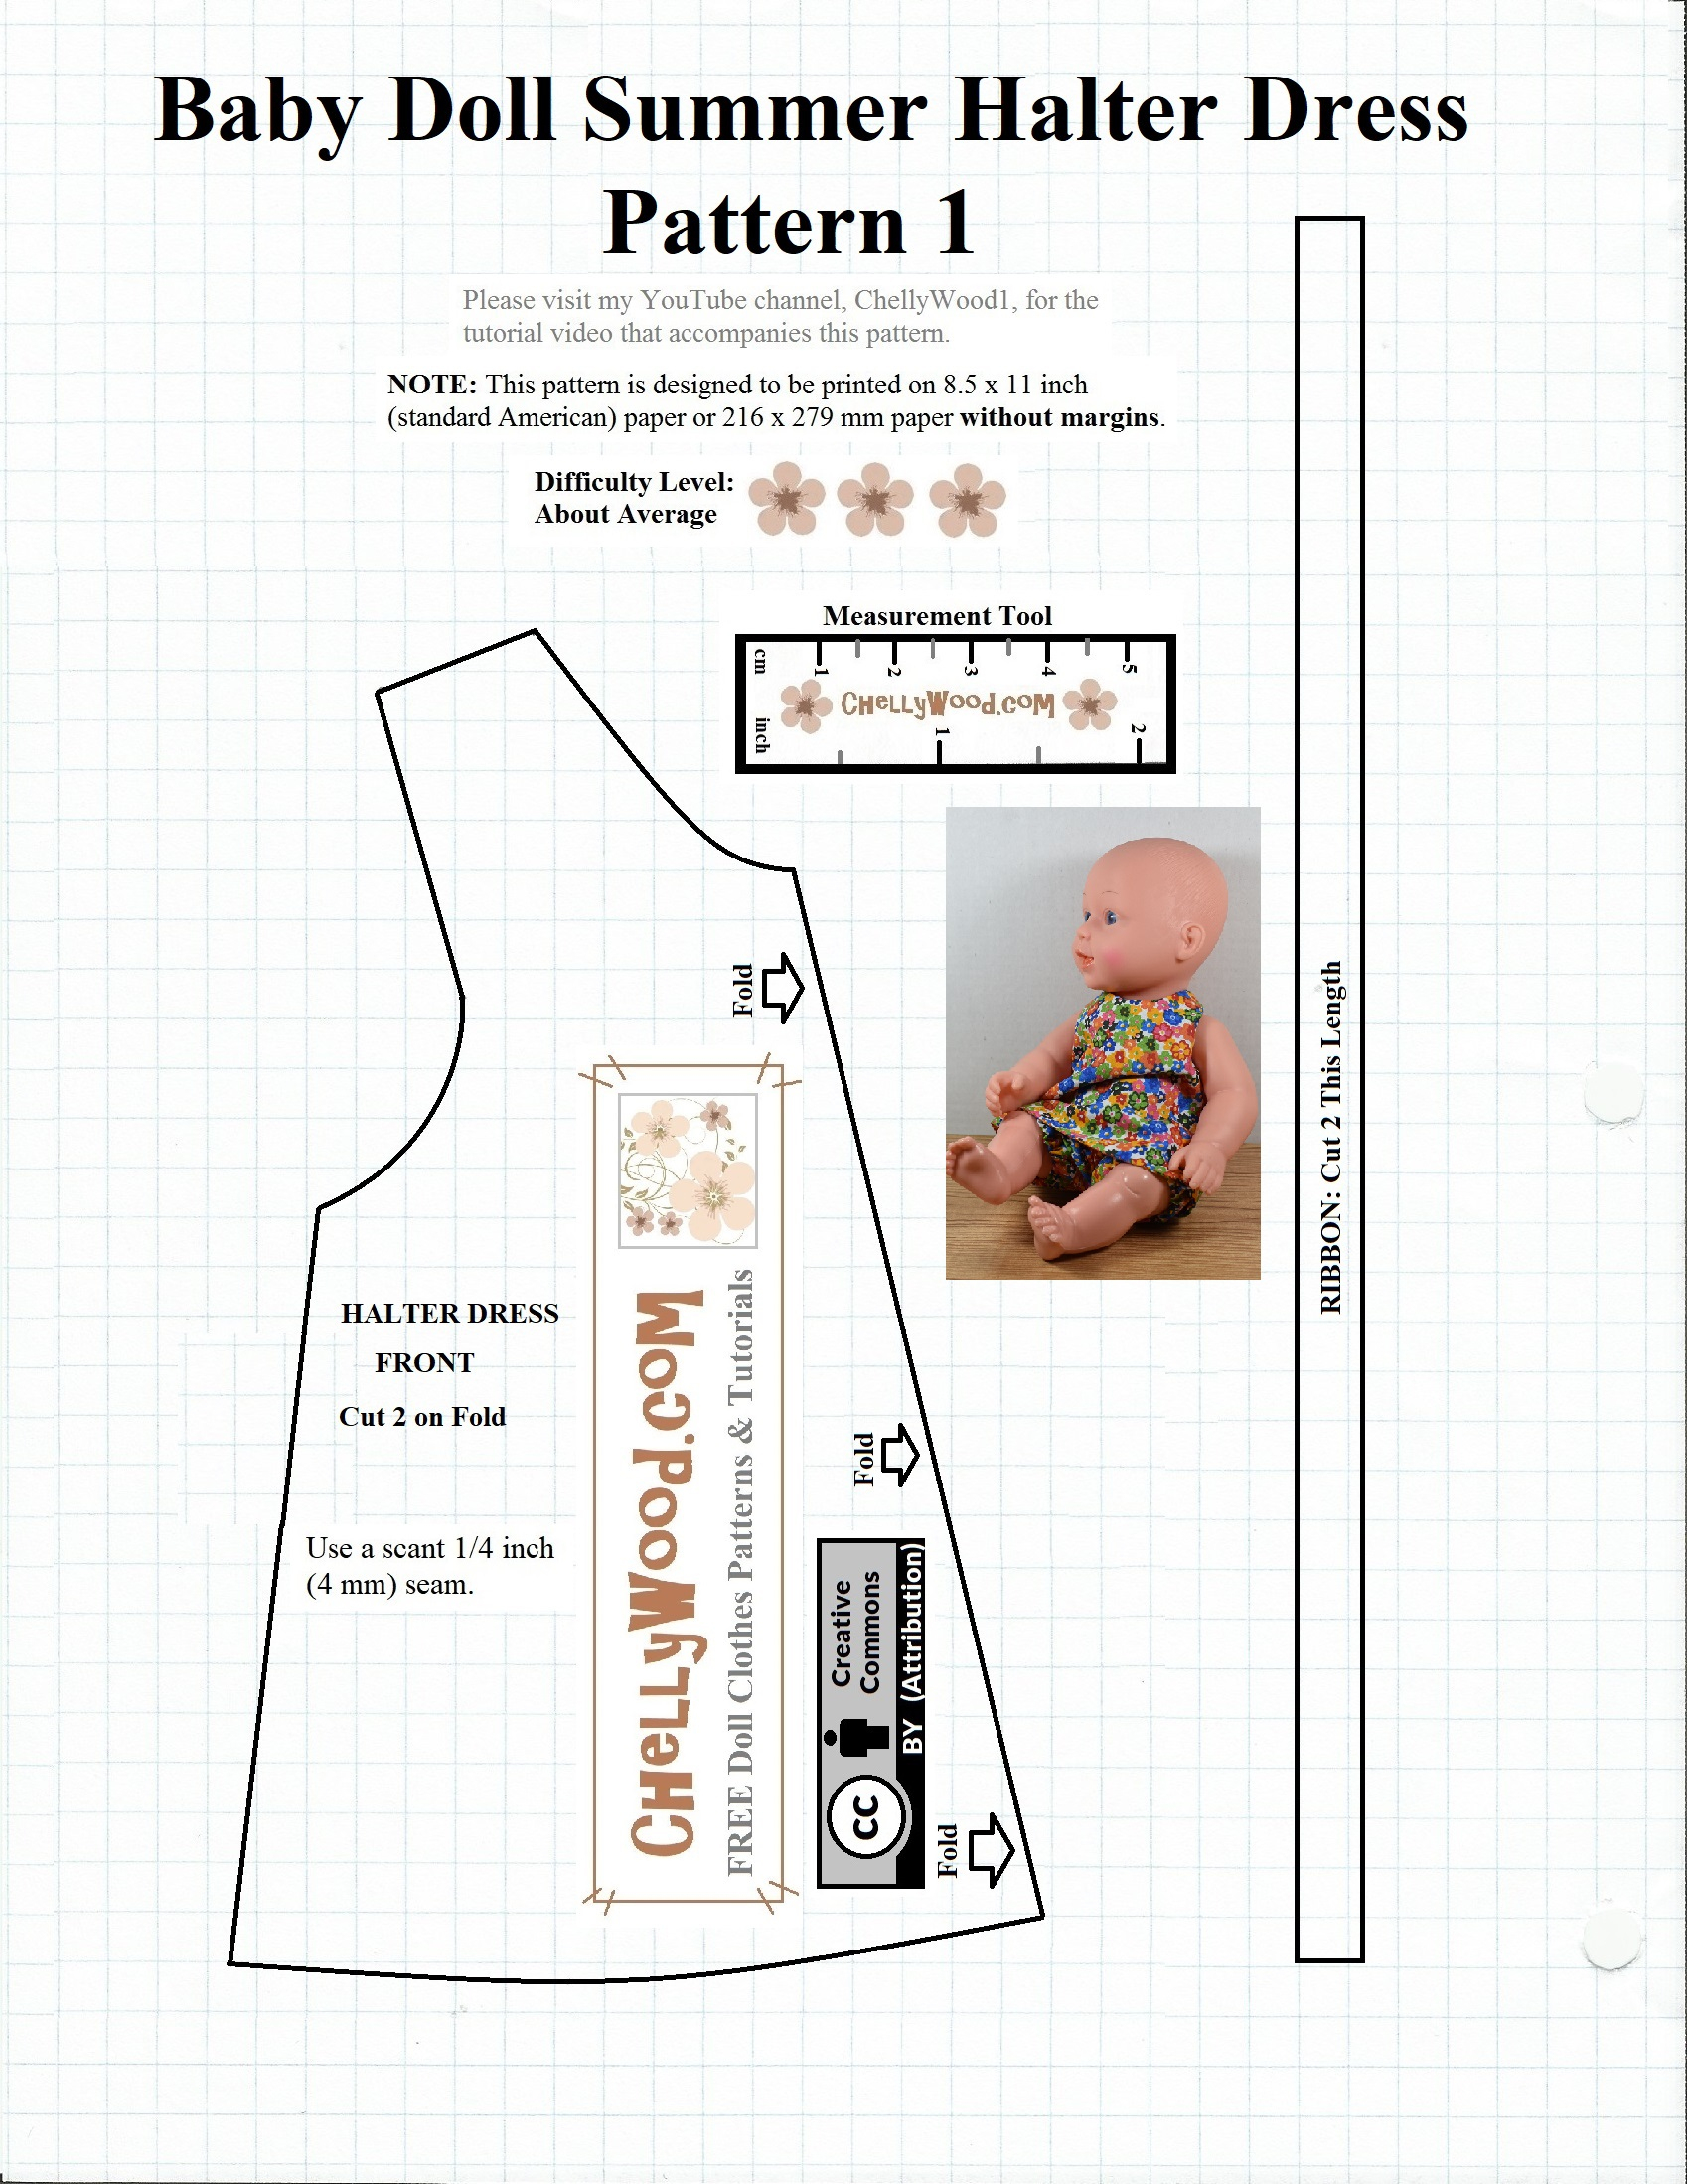 Free #dollclothes #patterns For 12″ Baby #dolls @ Chellywood - Free Printable Patterns For Sewing Doll Clothes